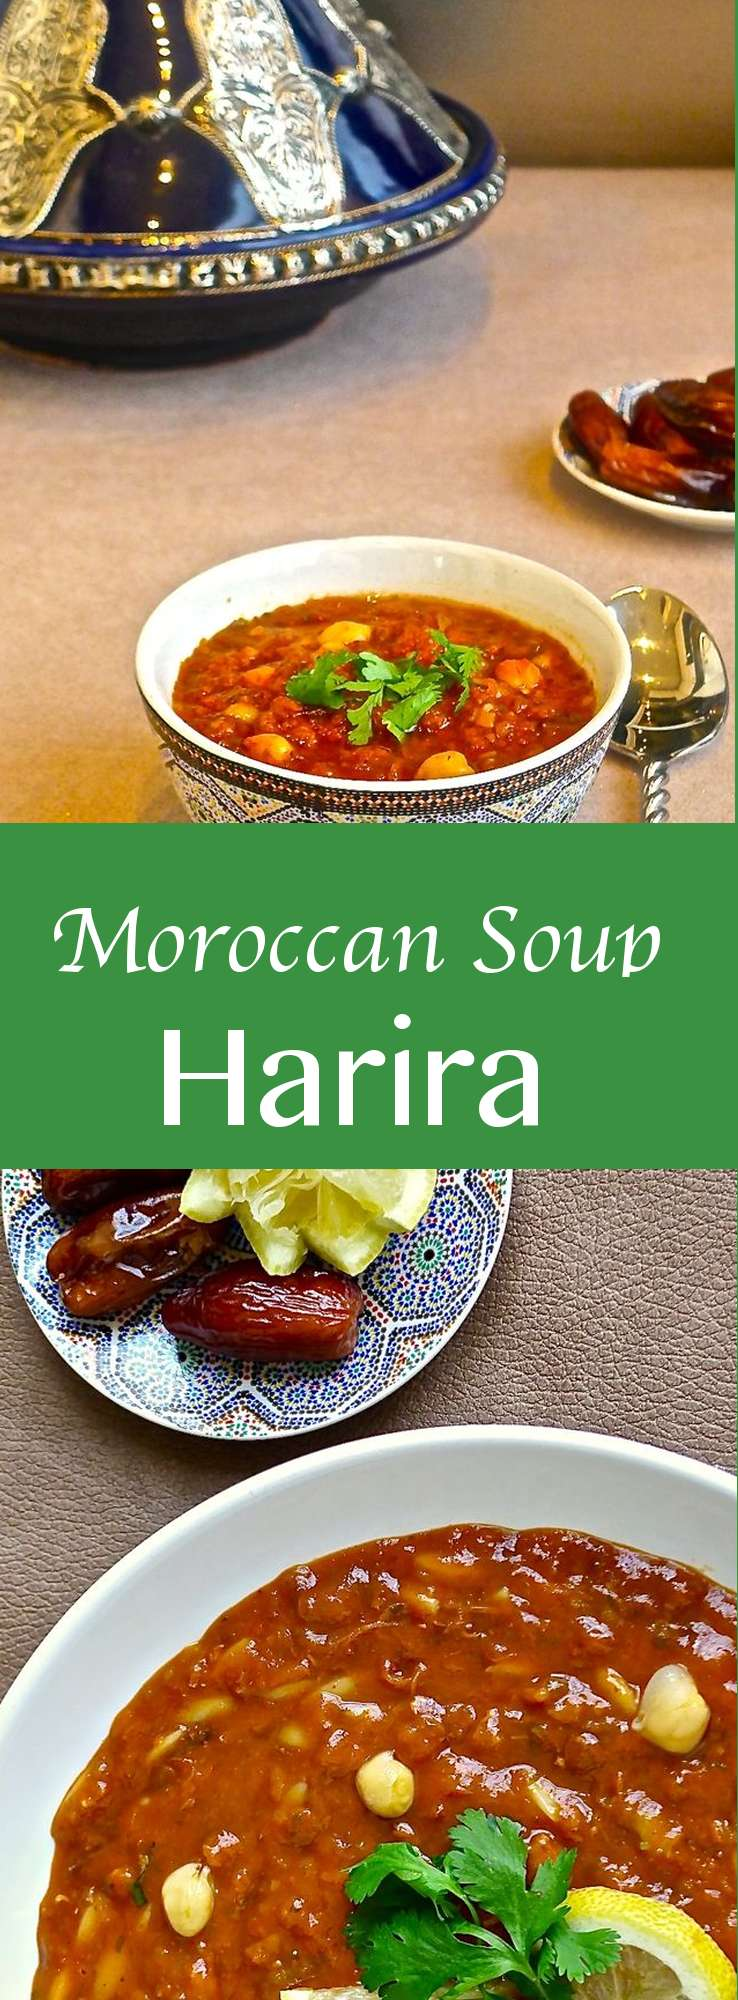 Harira is the traditional soup of Morocco, and more specifically from Fès that is popular as a starter but can also be eaten on its own as a snack.